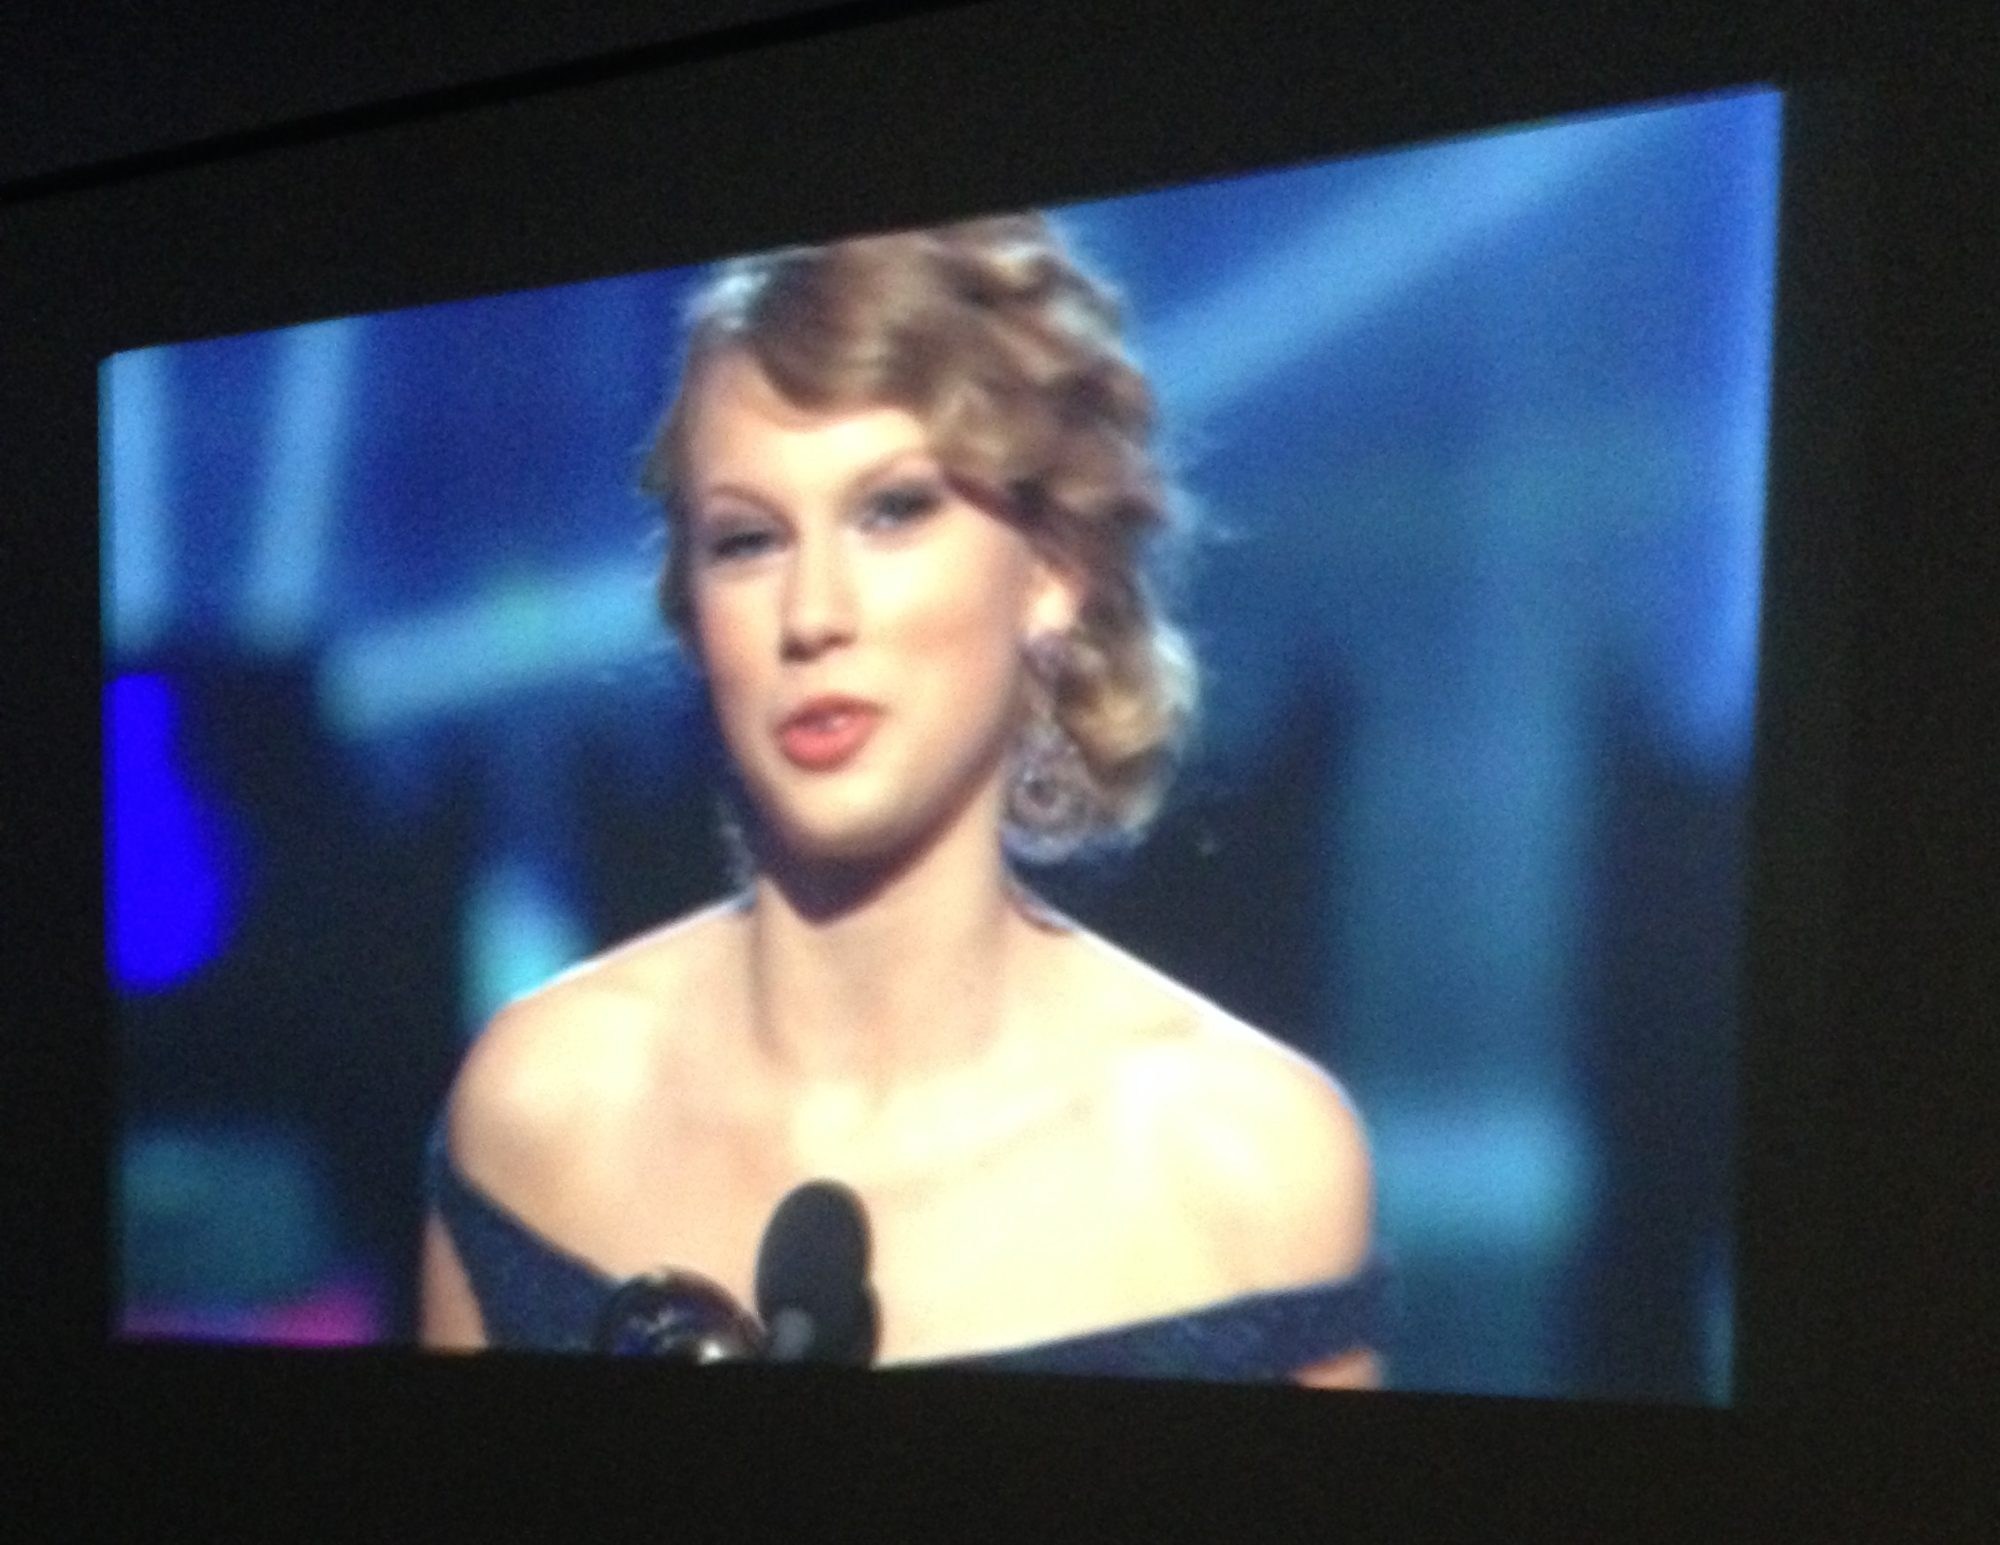 My daughter and I LOVE Taylor Swift and the exhibit on her was INSPIRING and BEAUTIFUL!!! www.alexisvear.com